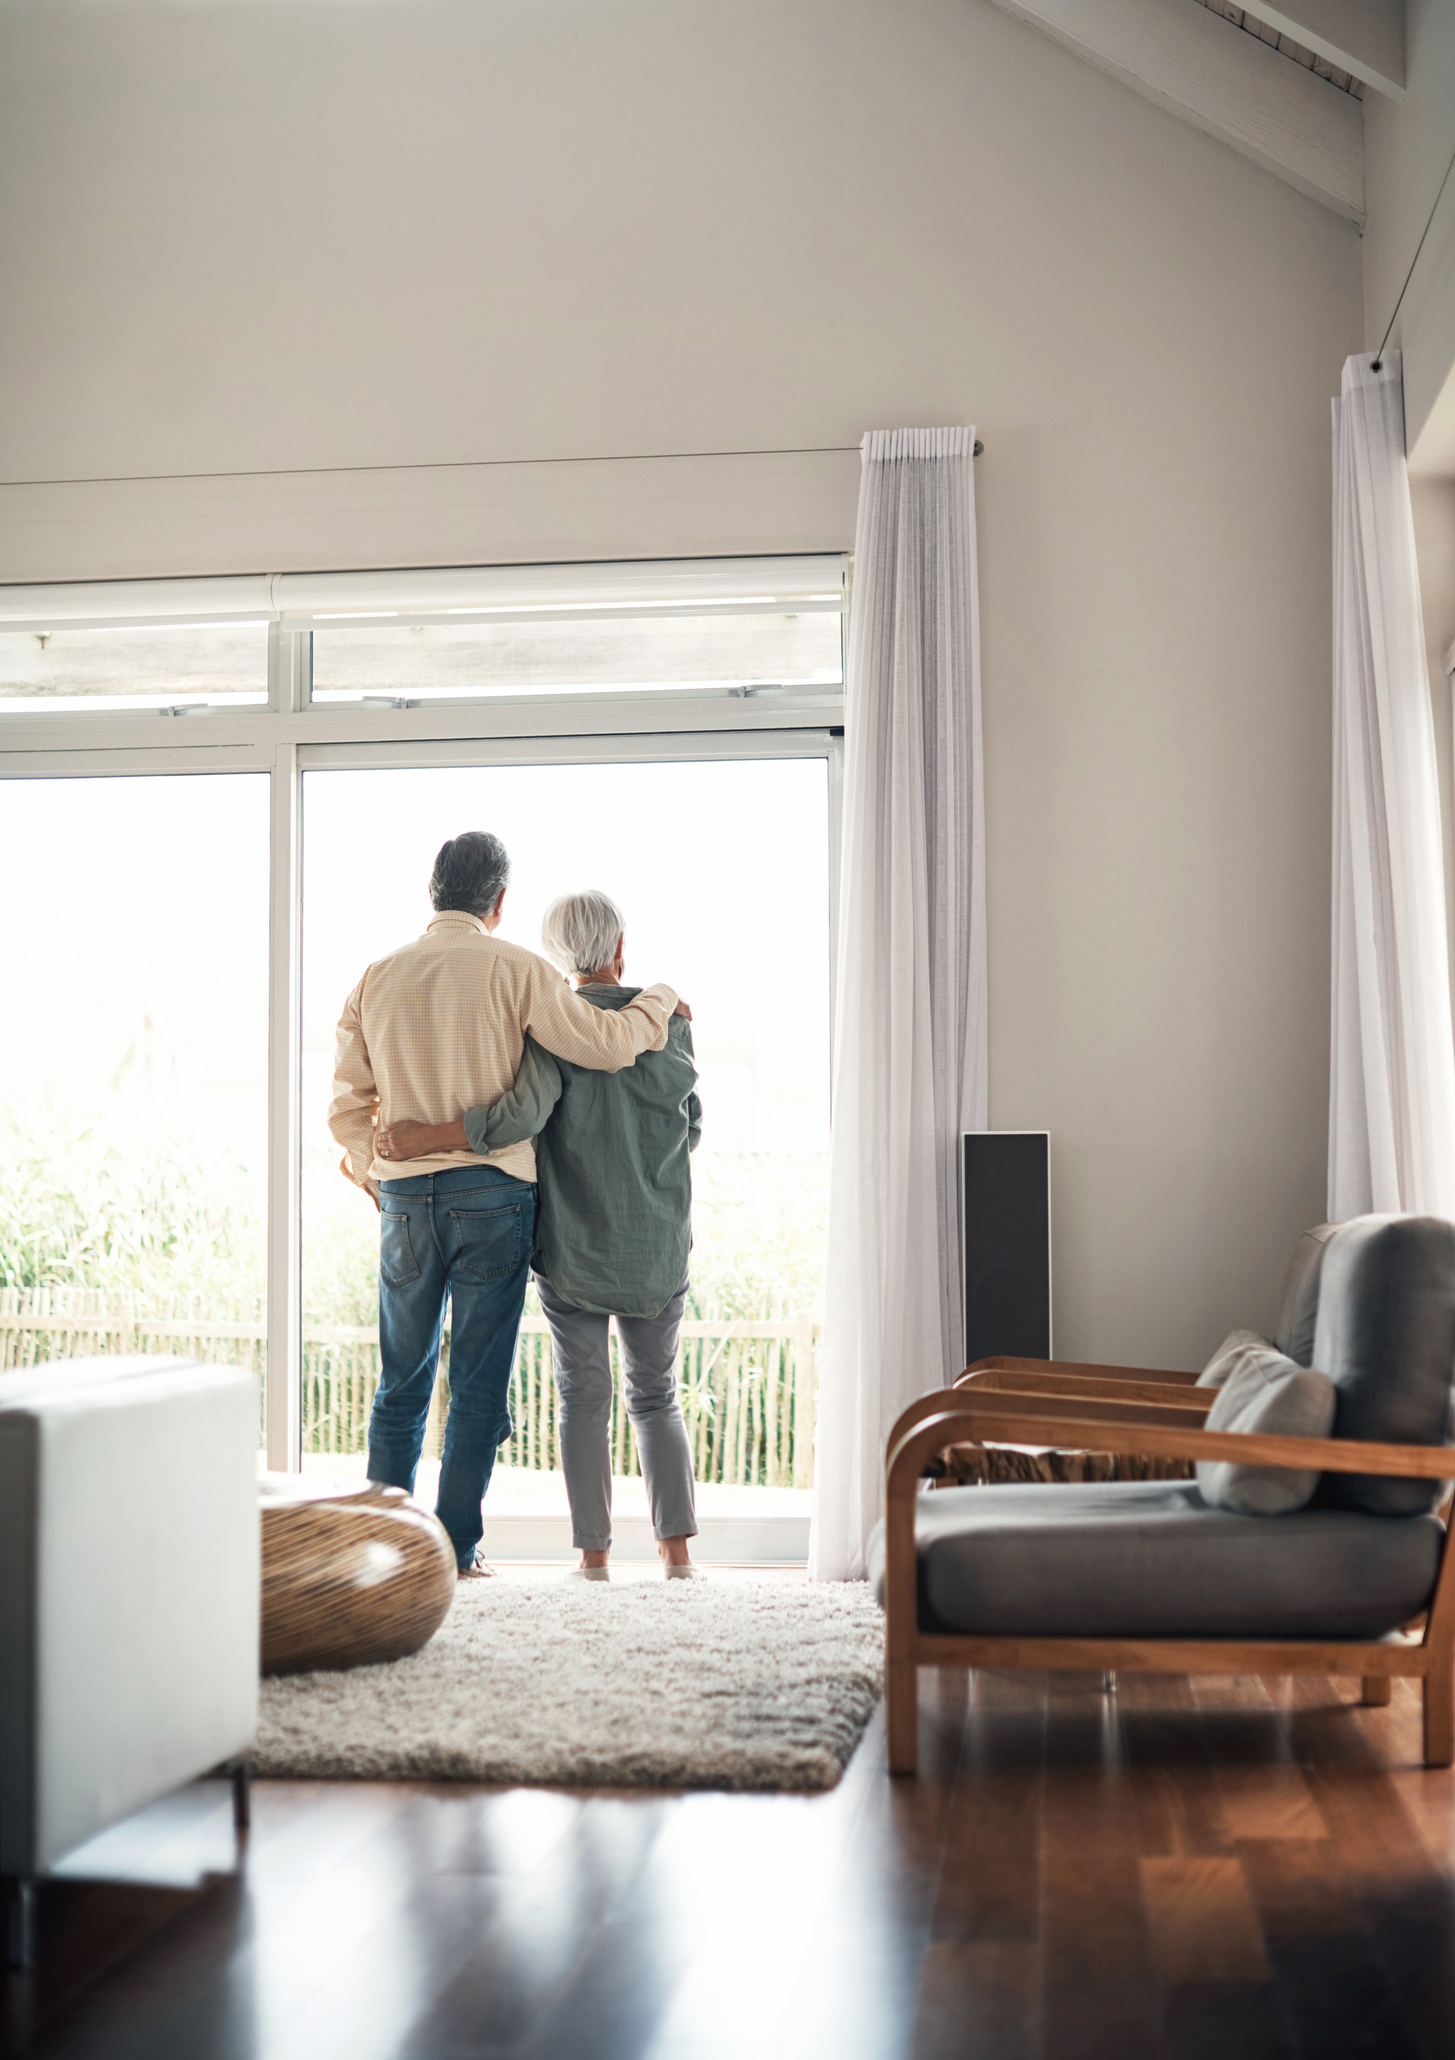 Rearview shot of an elderly couple looking out of their house together during a relaxing day at home